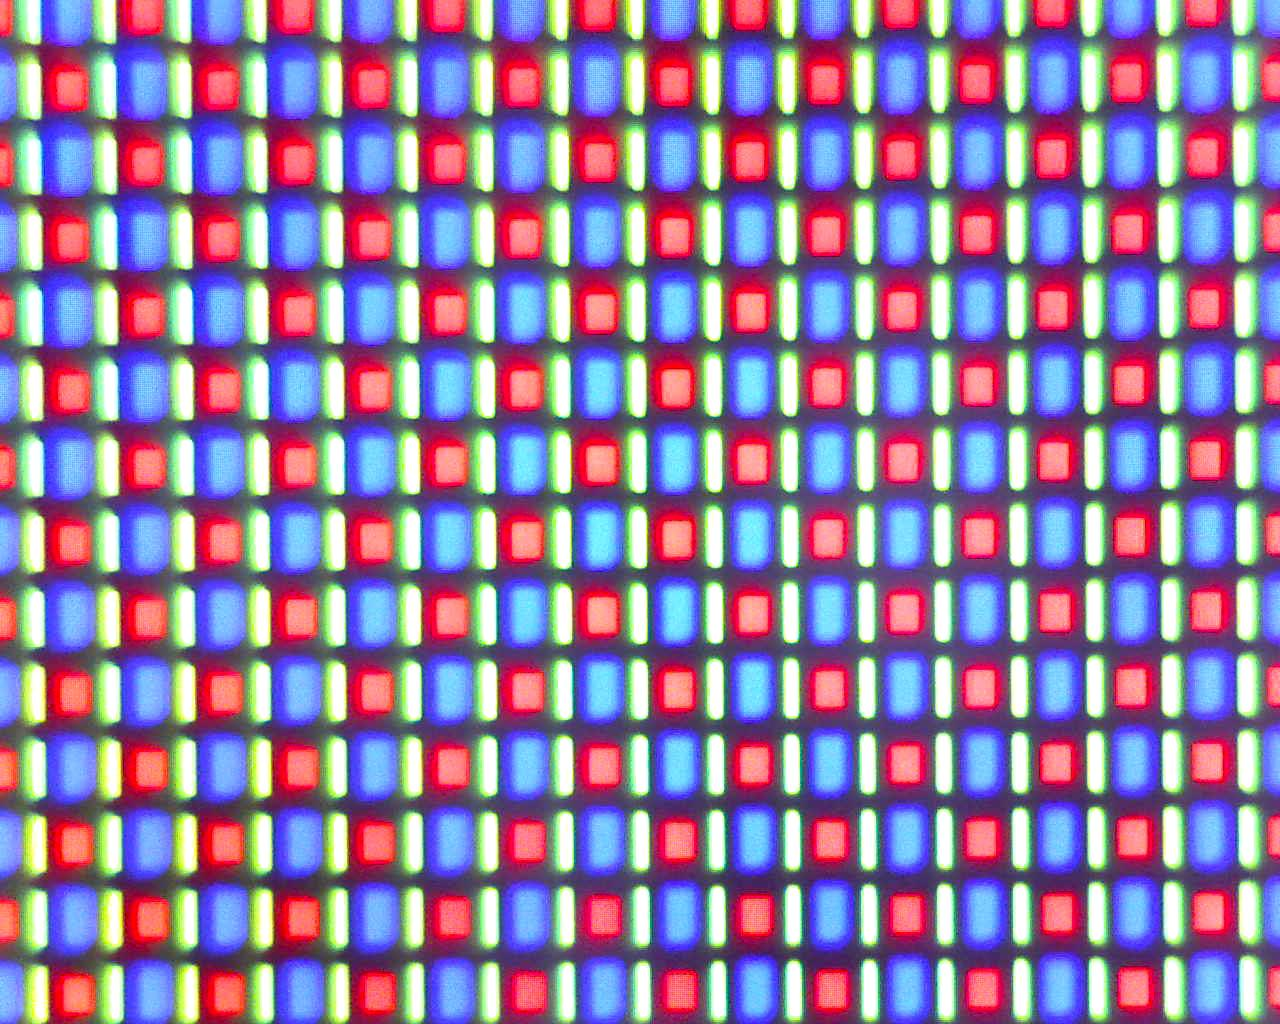 Nexus One's AMOLED screen under the microscope (High magnification)